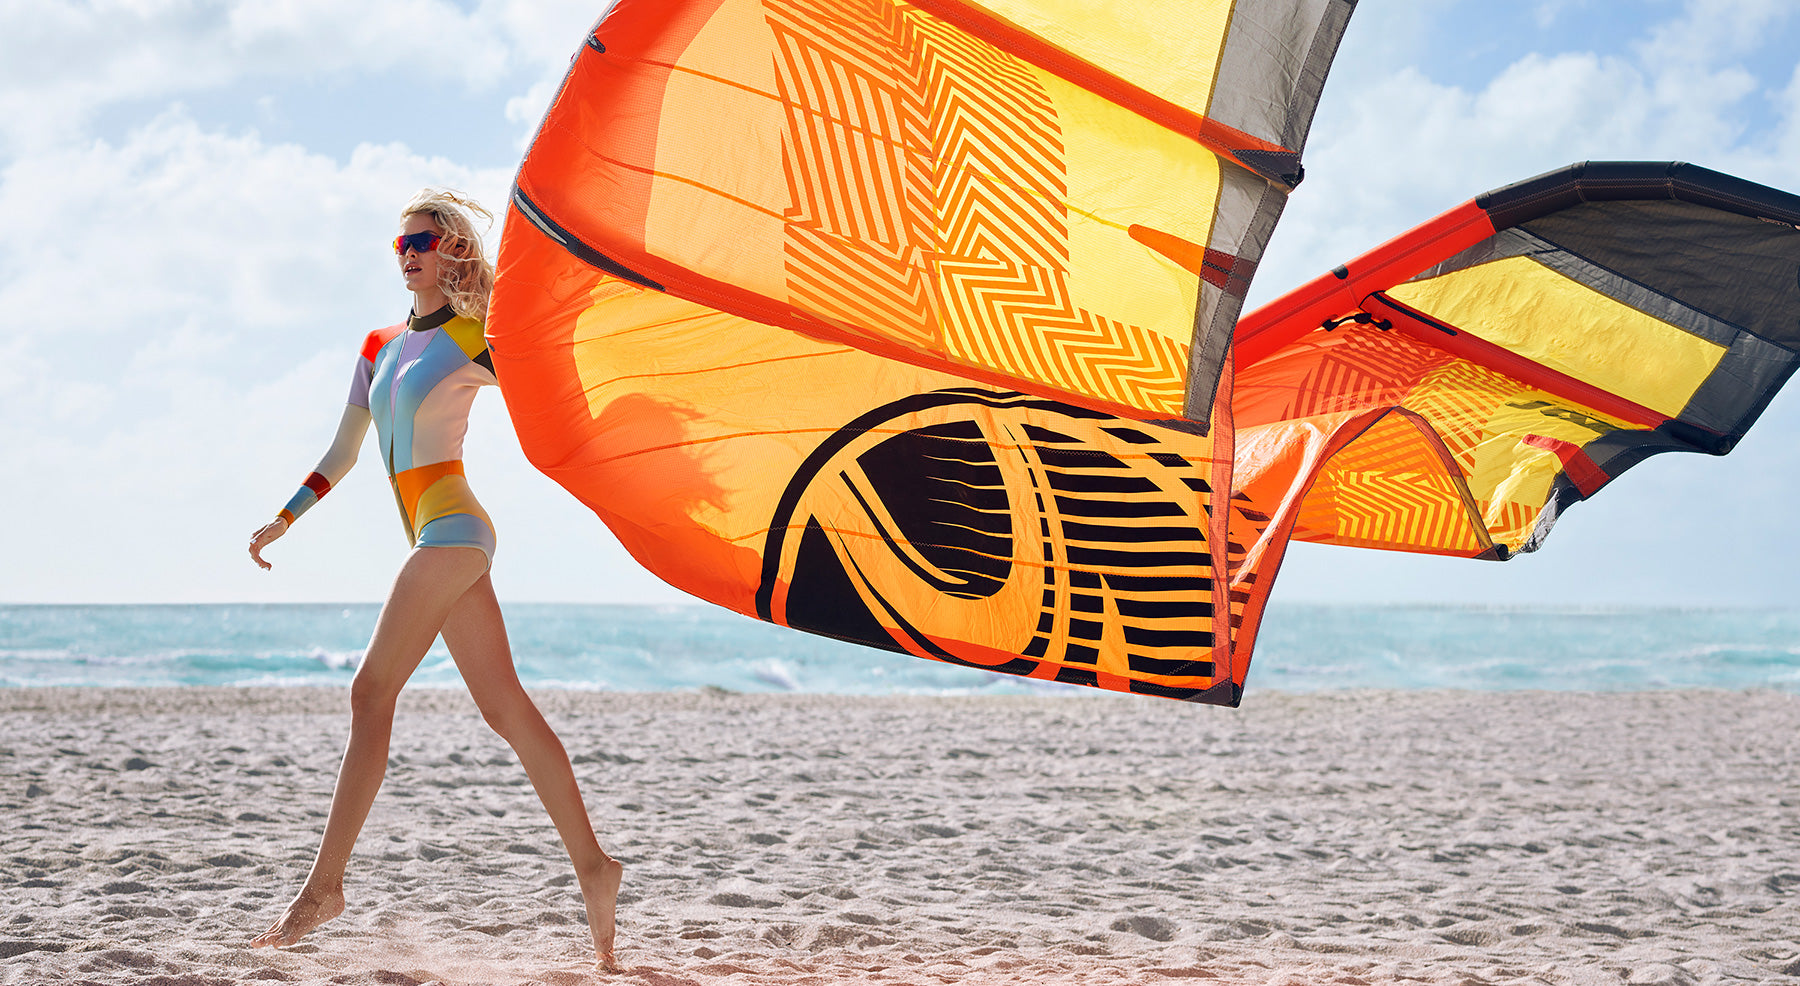 Model on a beach flying a kite wearing a multi color neoprene colorblock wetsuit